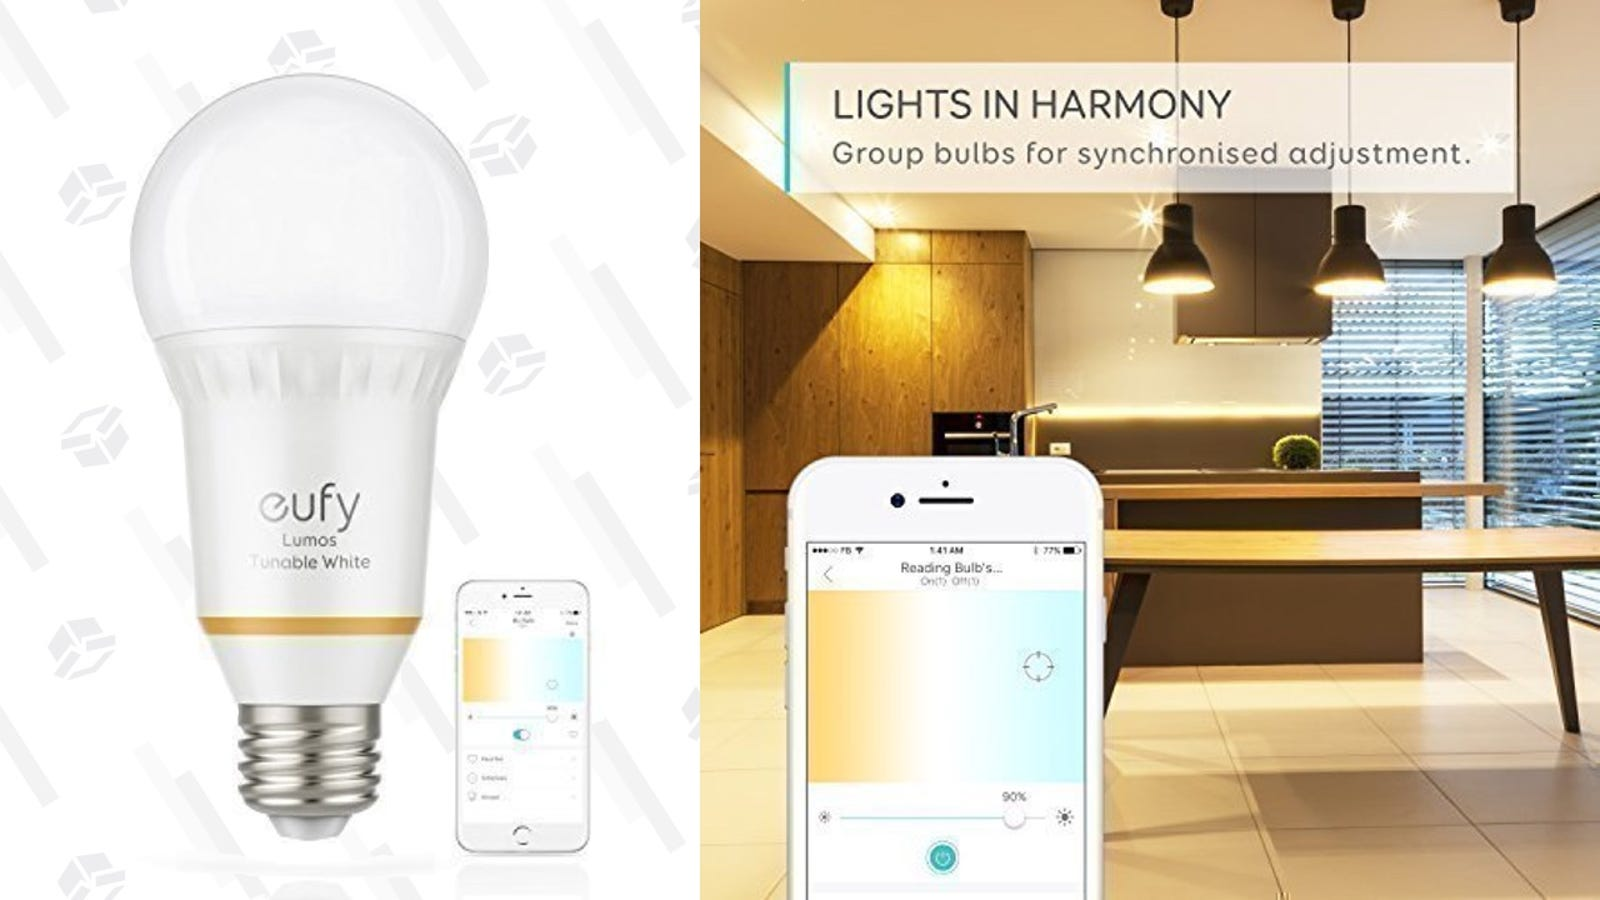 Here's a Bright Idea: Buy Smart Light Bulbs For $15 Or Less